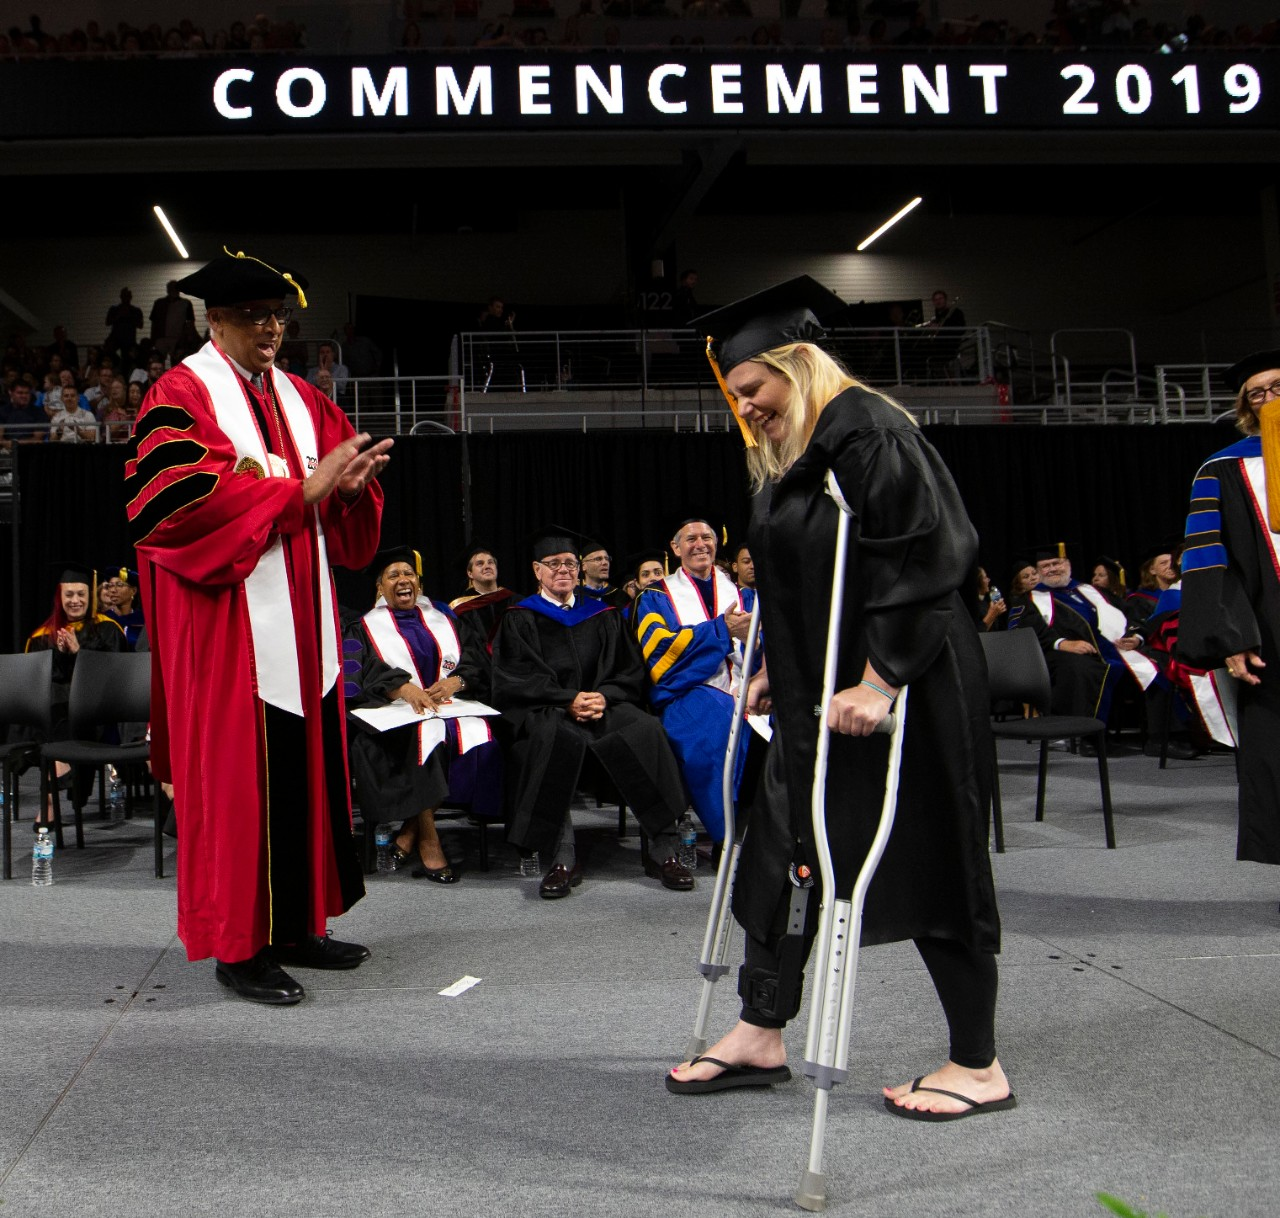 A student on crutches walks on stage to shake President Neville Pinto's hand.